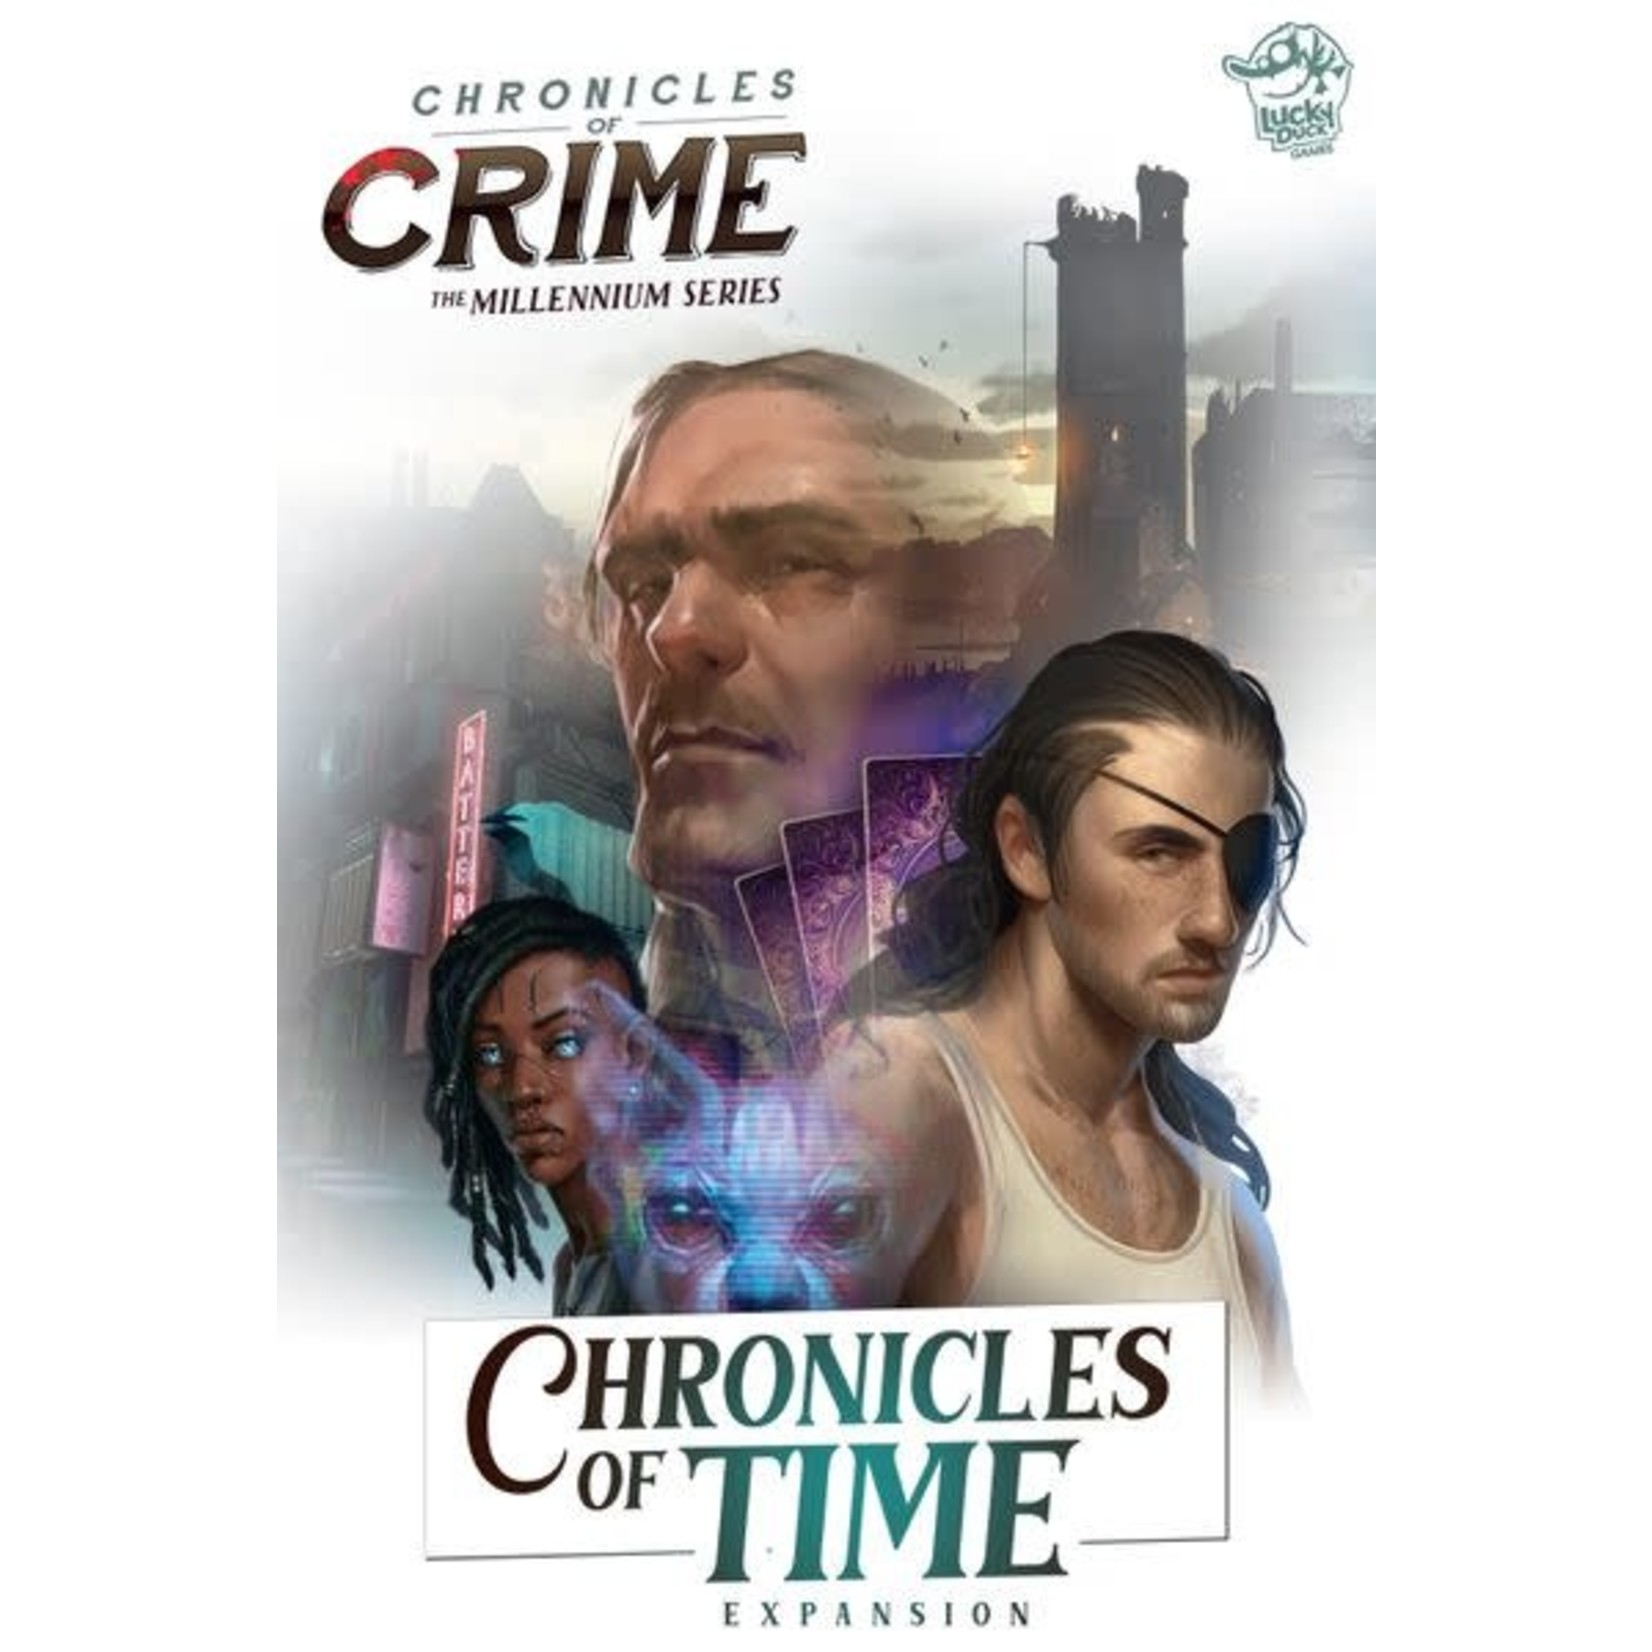 Lucky Duck Games Chronicles of Crime: Chronicles of Time